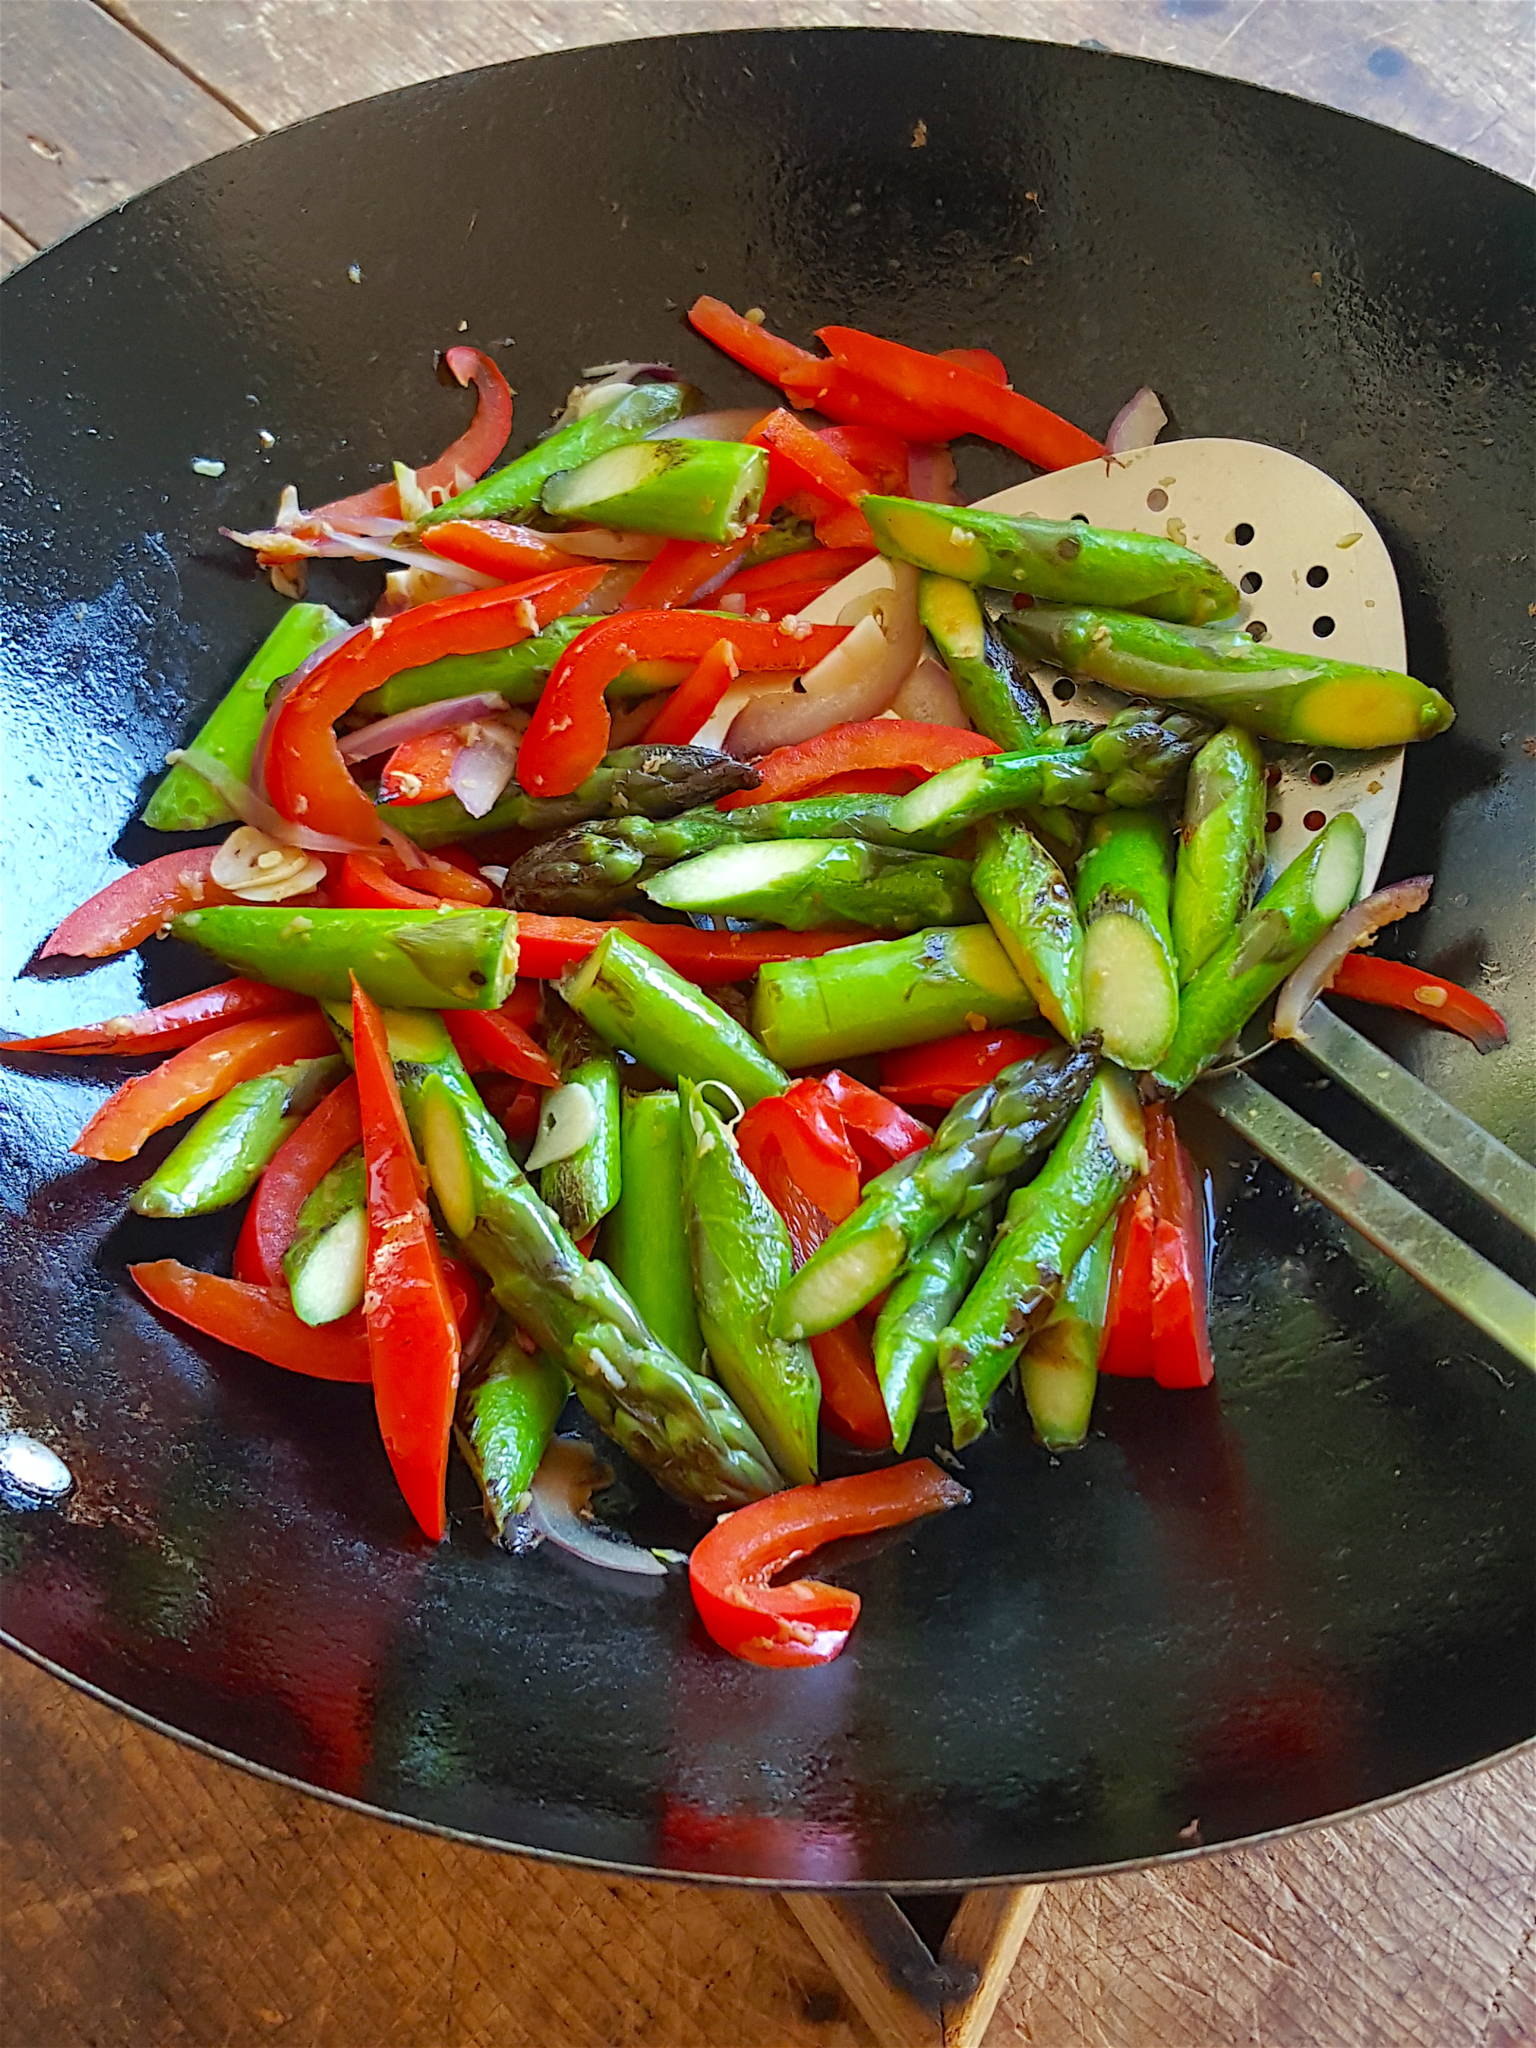 Asparagus & Red pepper Stir-fry